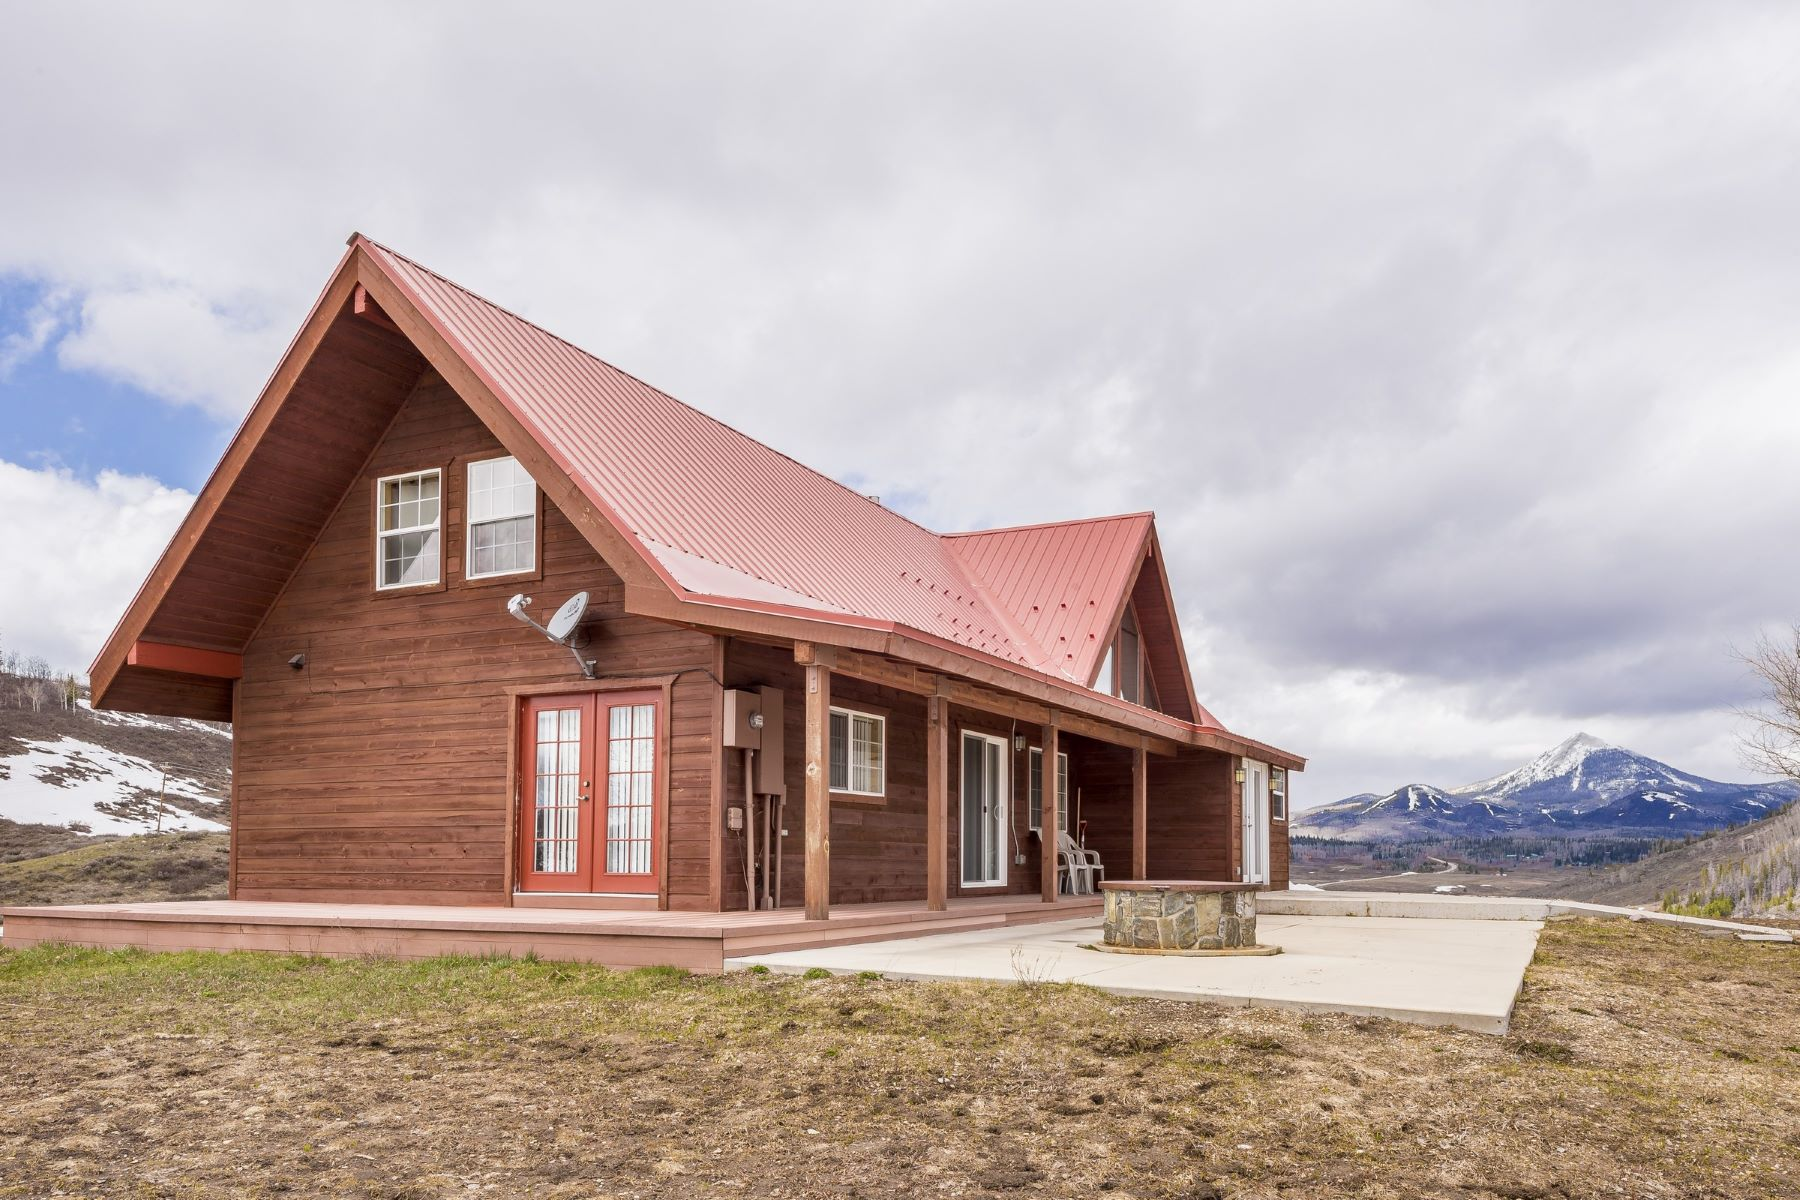 Single Family Home for Sale at Bench Warmer 27200 Golden View Trail Clark, Colorado, 80428 United States